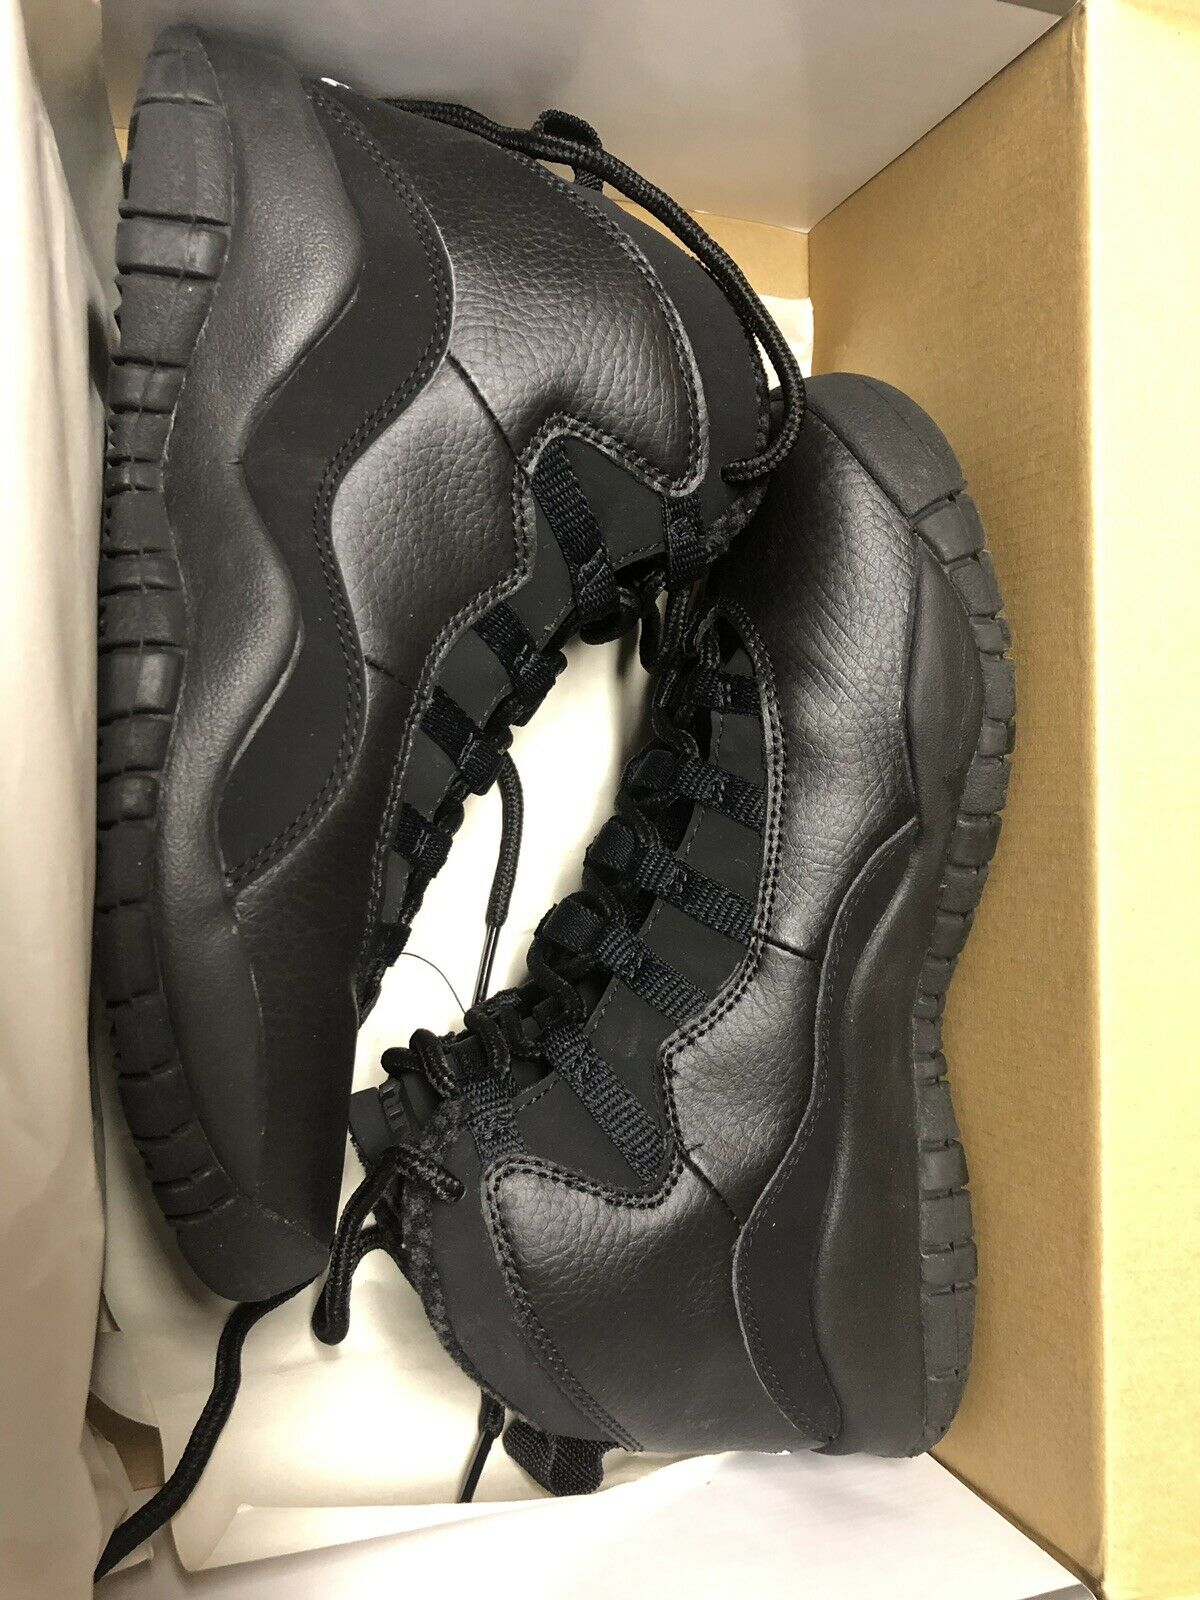 Air Jordan 10 DS size 4.5